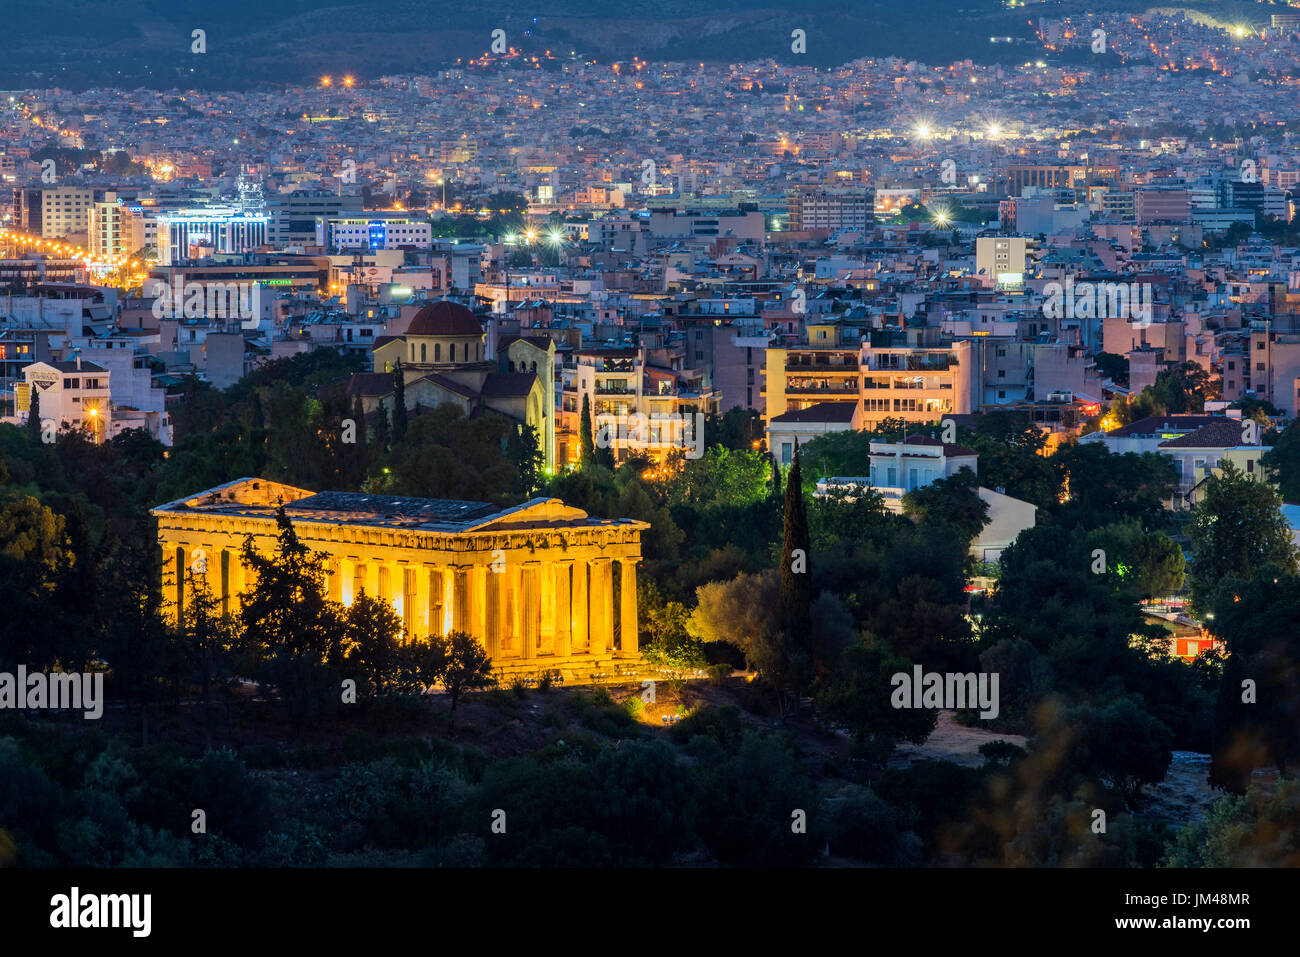 Night view of Temple of Hephaestus and city skyline behind, Athens, Attica, Greece - Stock Image